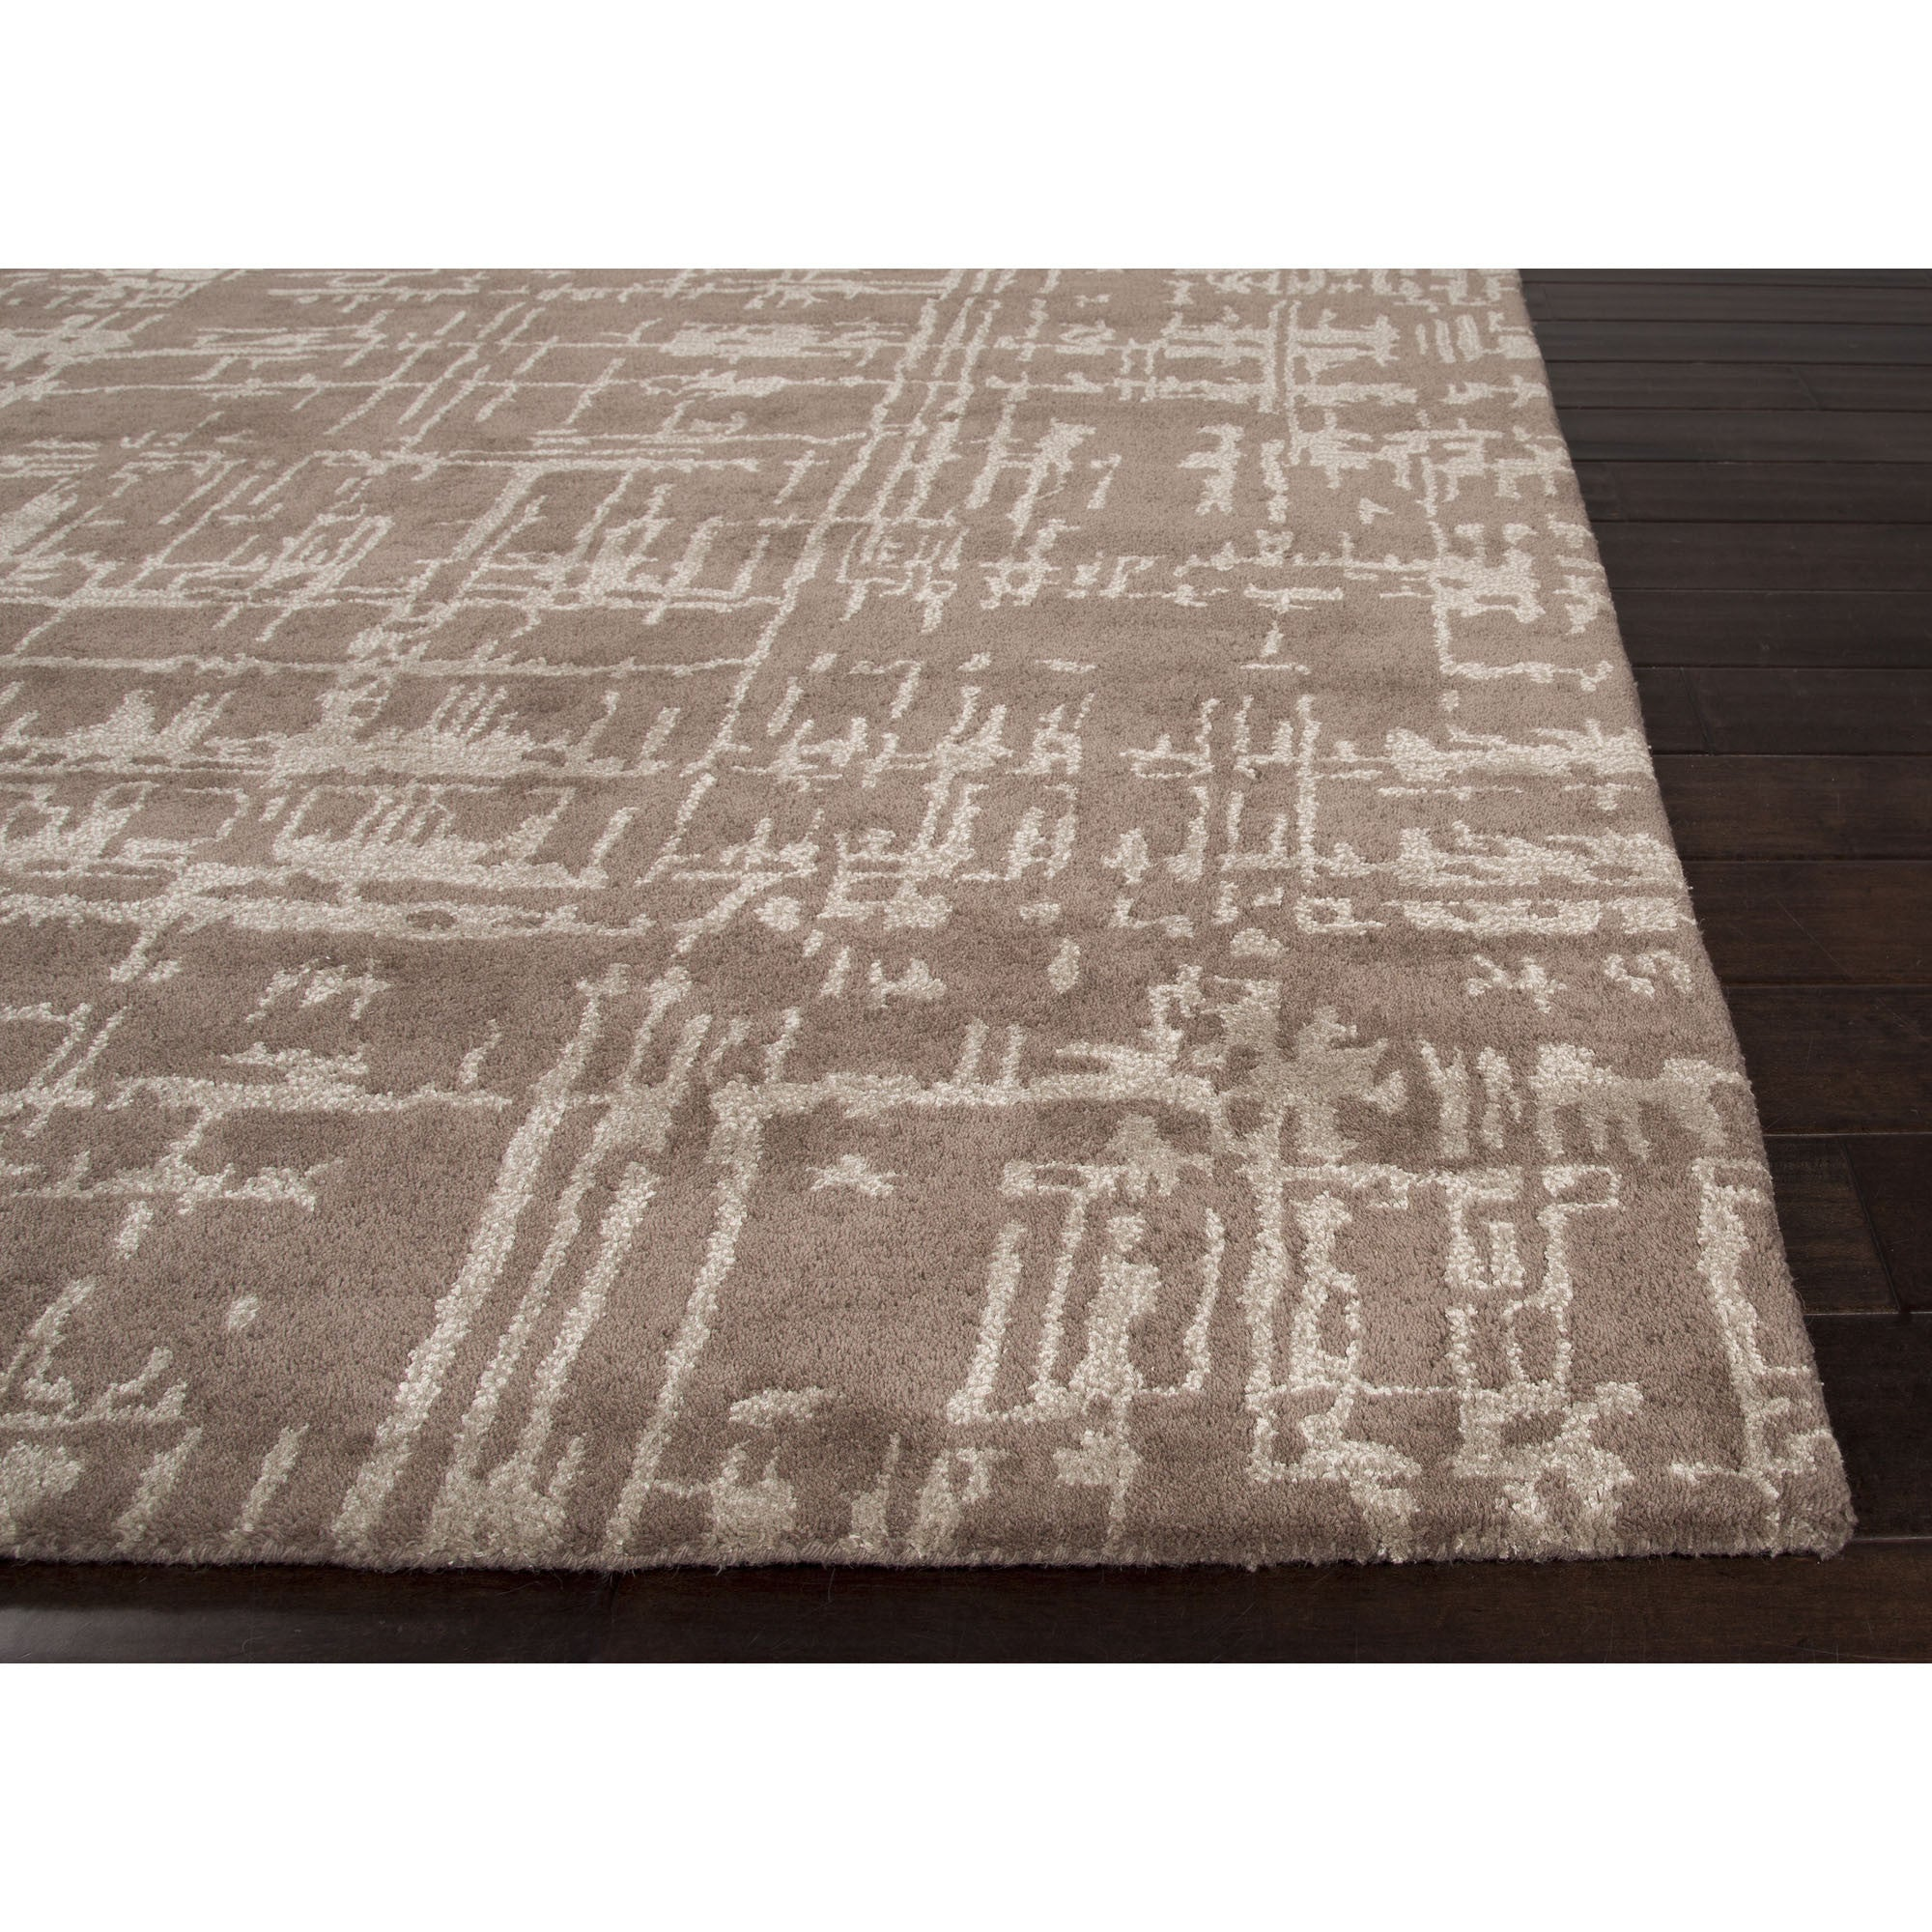 Jaipur rugs modern toneontone pattern brown tan wool and for Modern wool area rugs